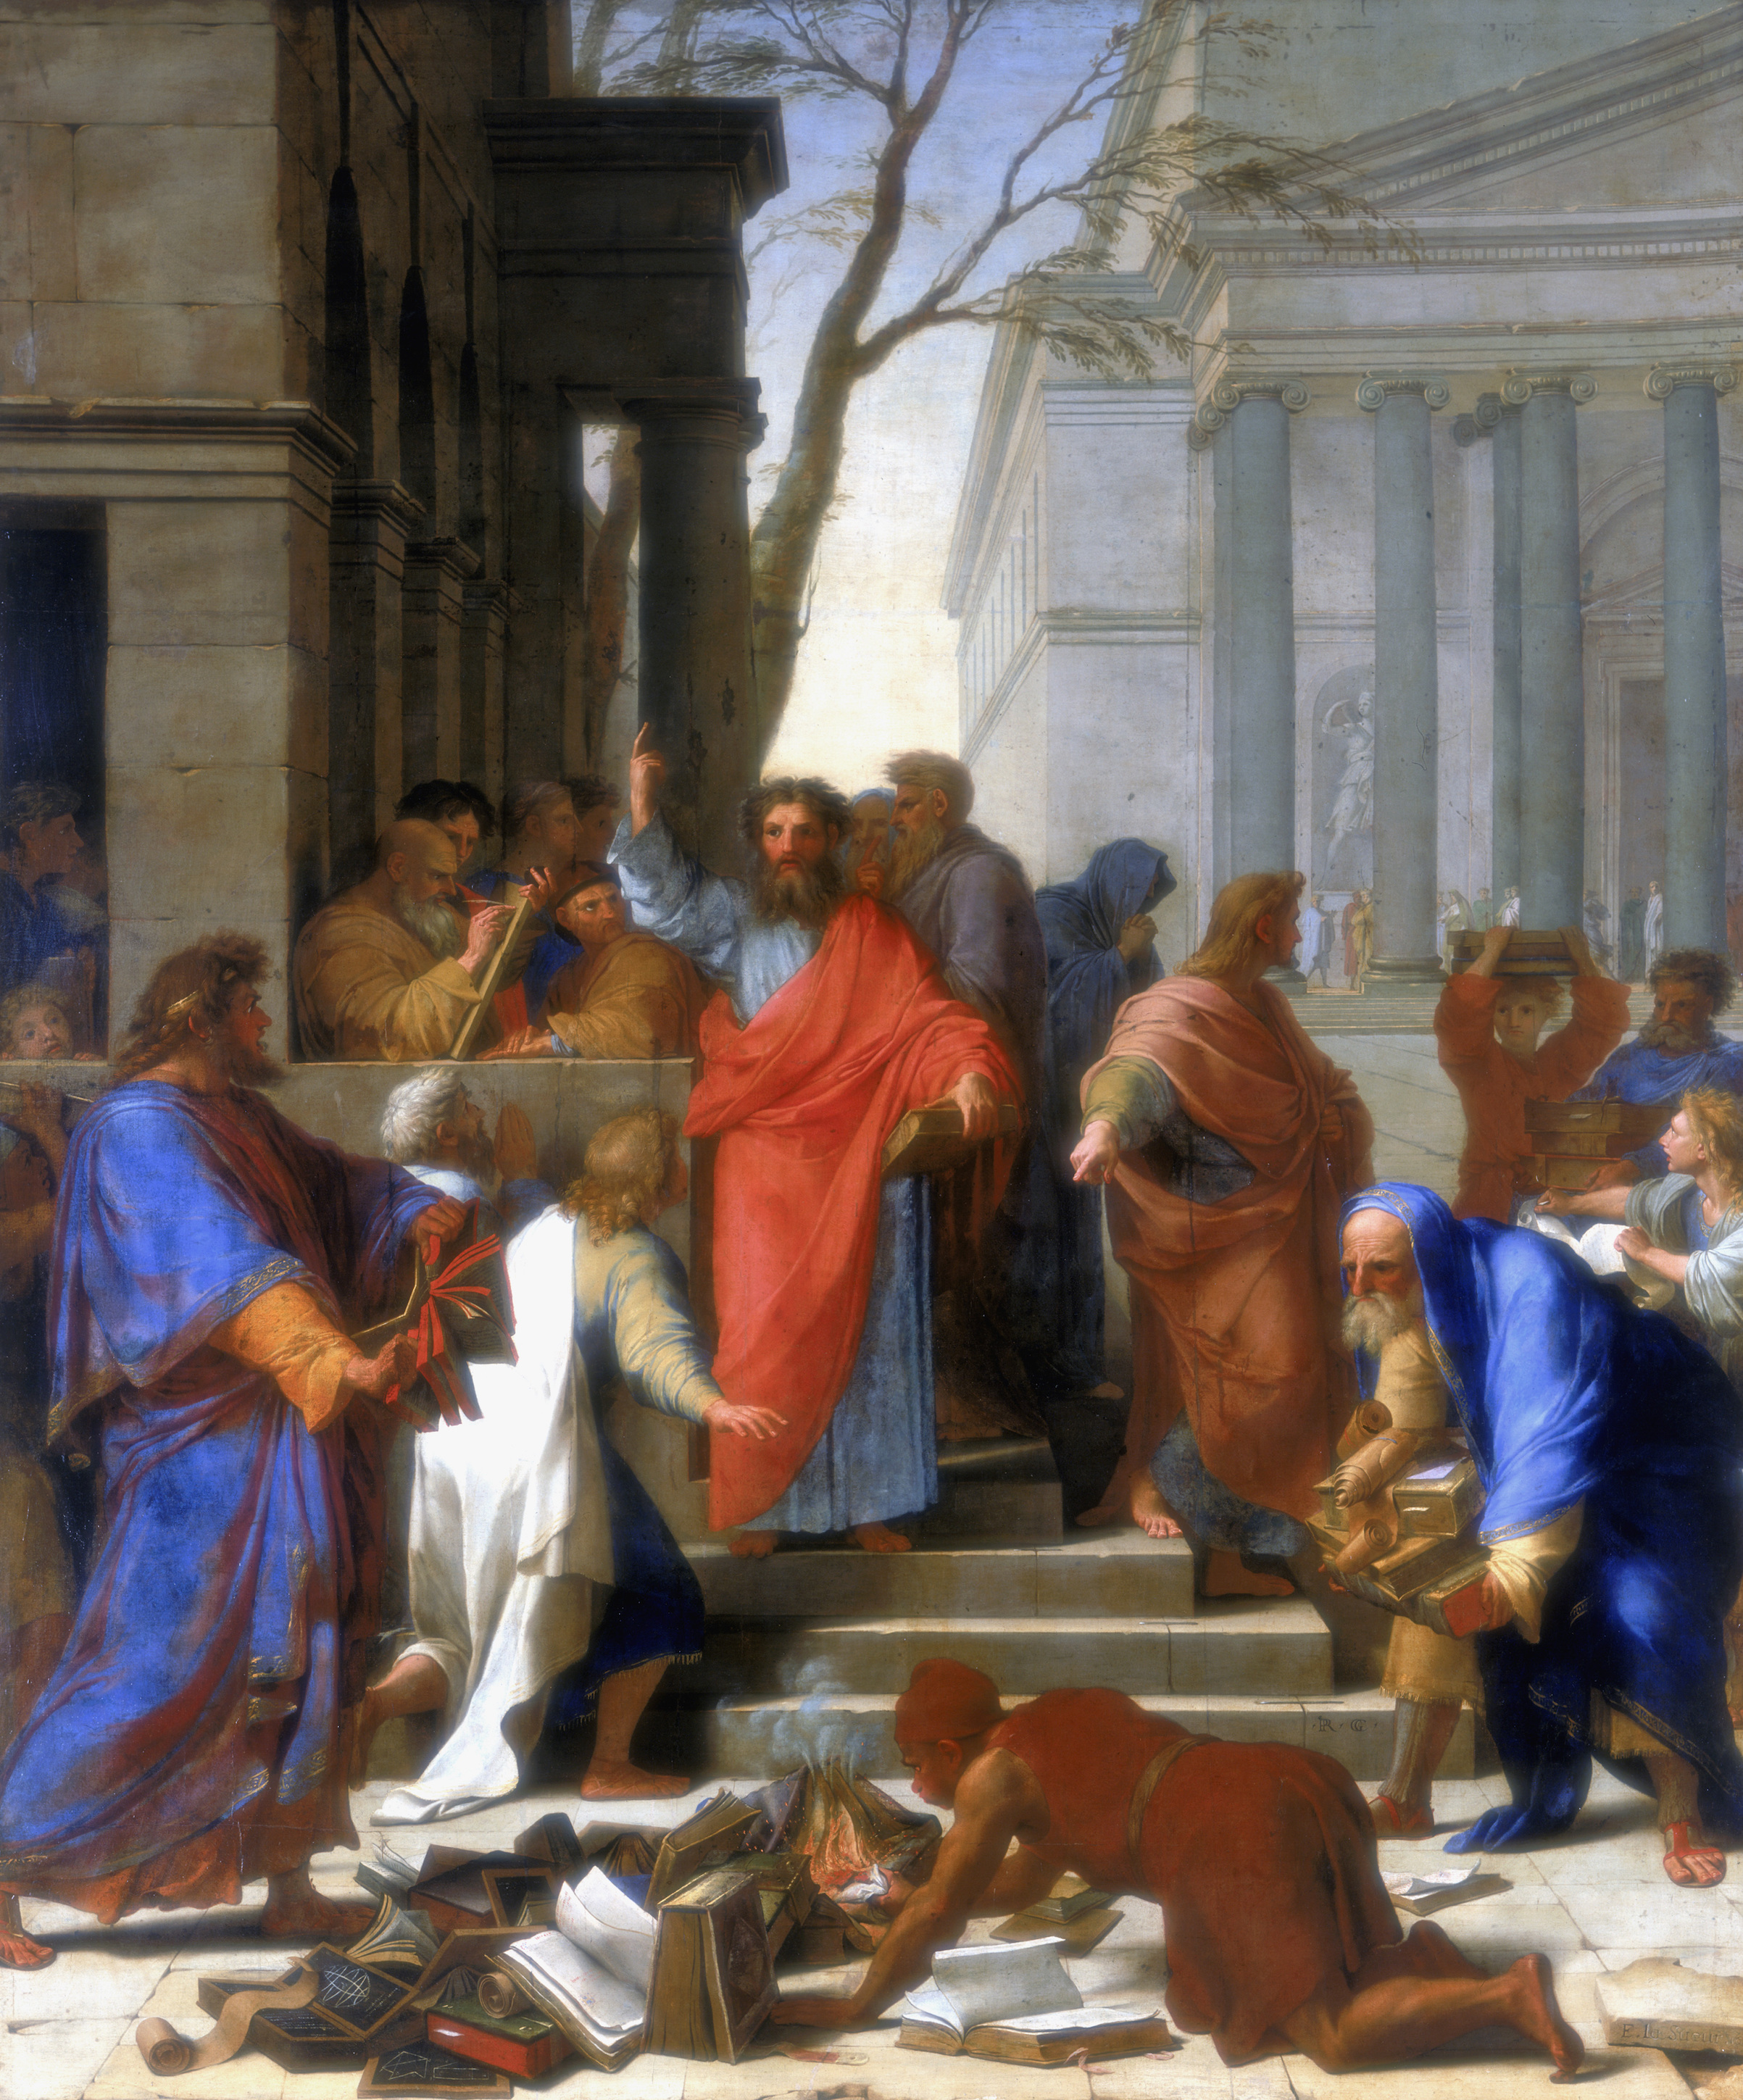 'Saint Paul Preaching at Ephesus' by Eustache Le Sueur, 1649. Located in the collection at the Louvre, Paris.